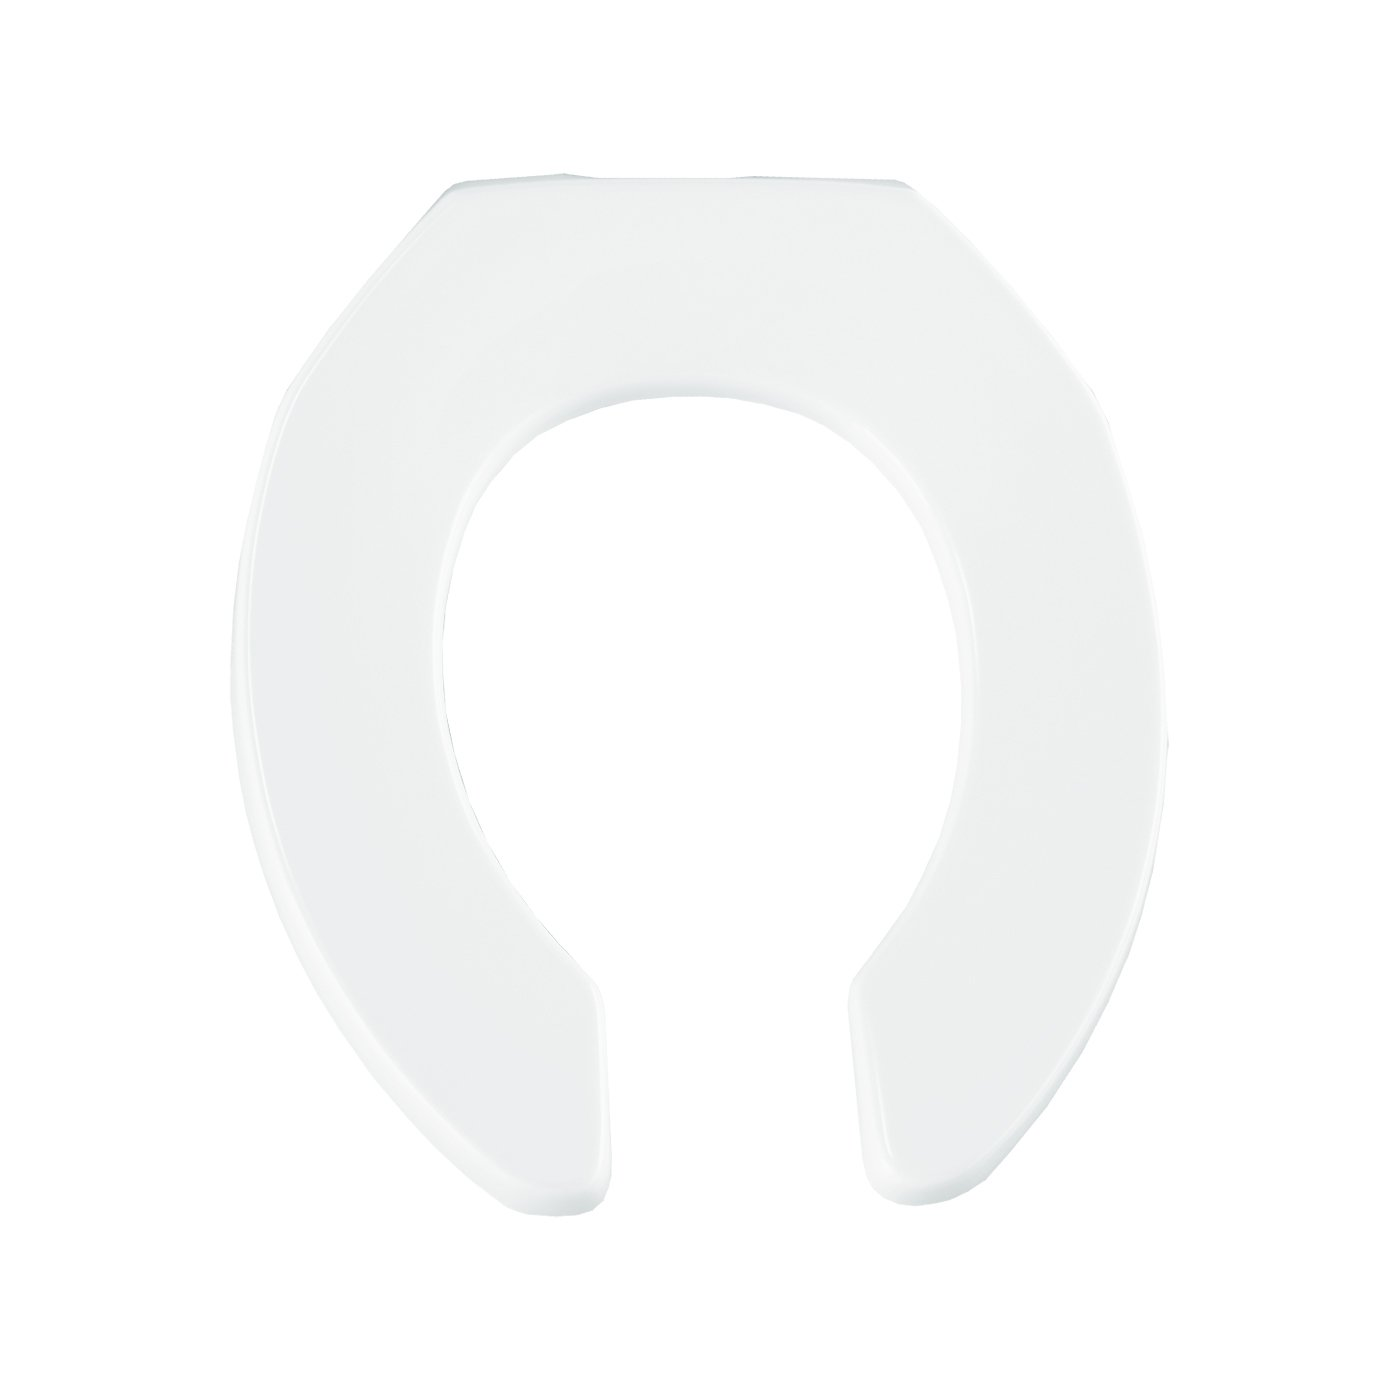 Bemis 955SSC000 Open Front Less Cover Round Toilet Seat with Self Sustaining Check Hinge, White